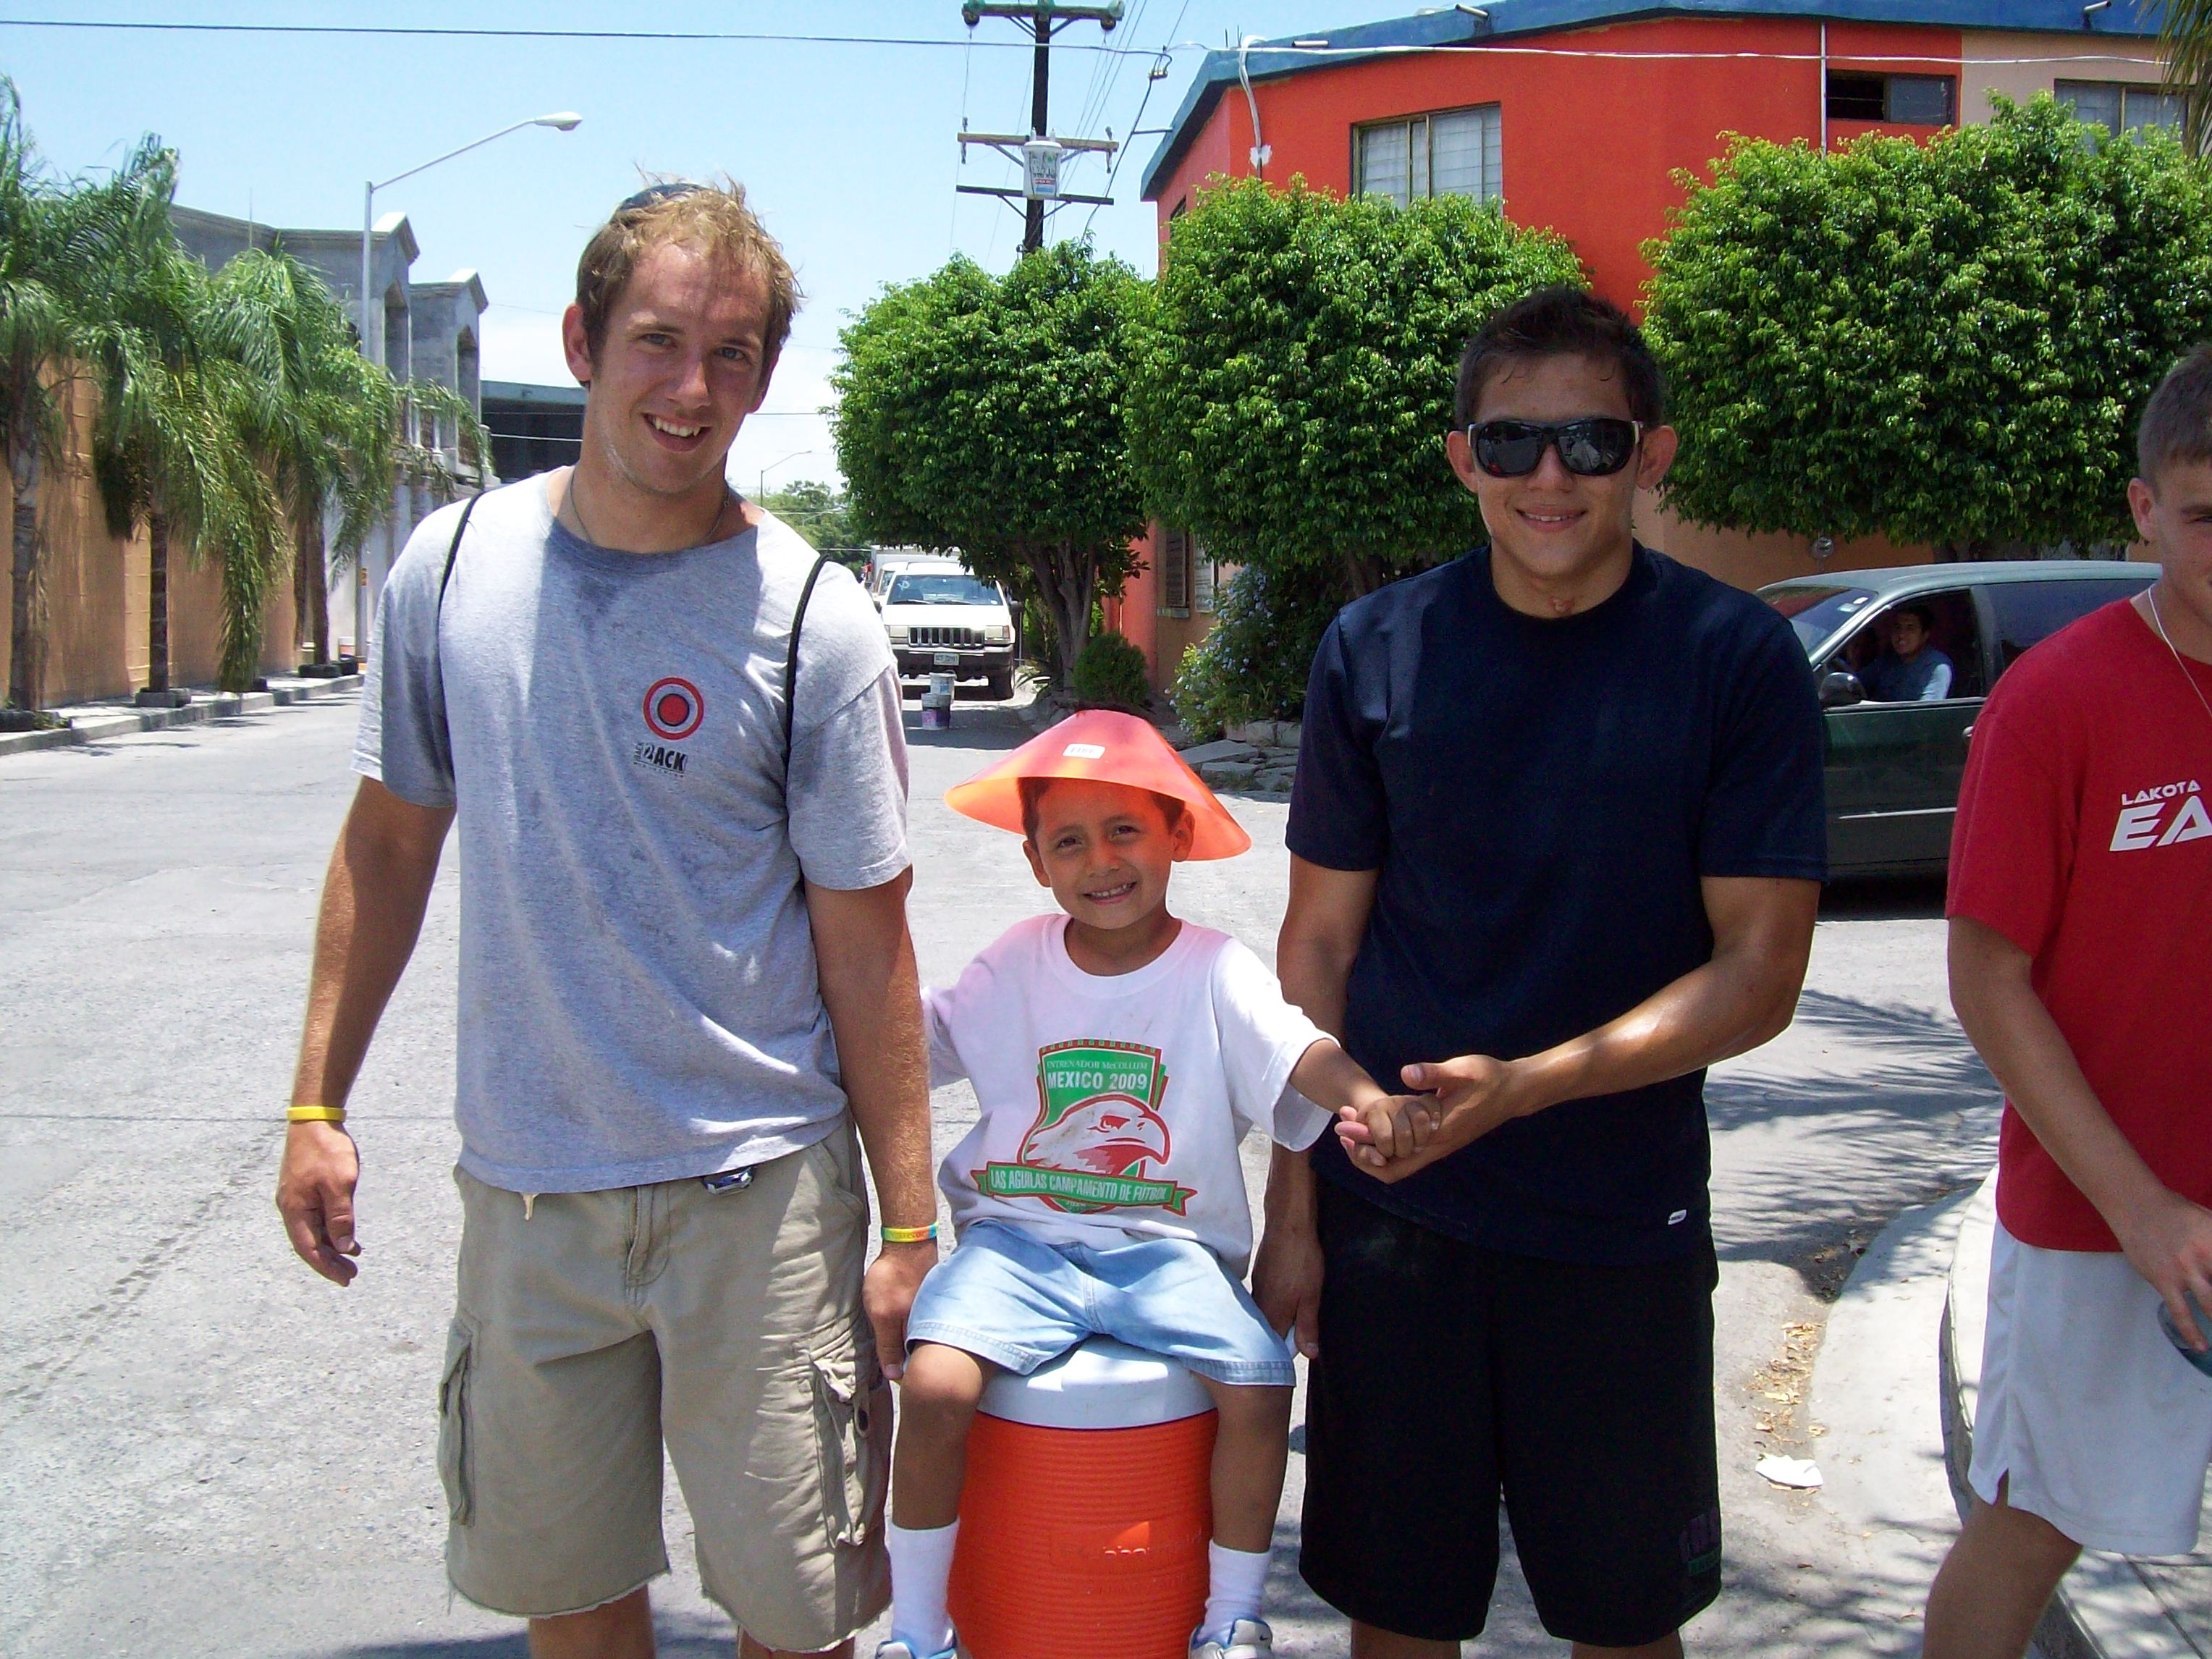 Shawn, a summer 2009 intern, at a work project in Monterrey